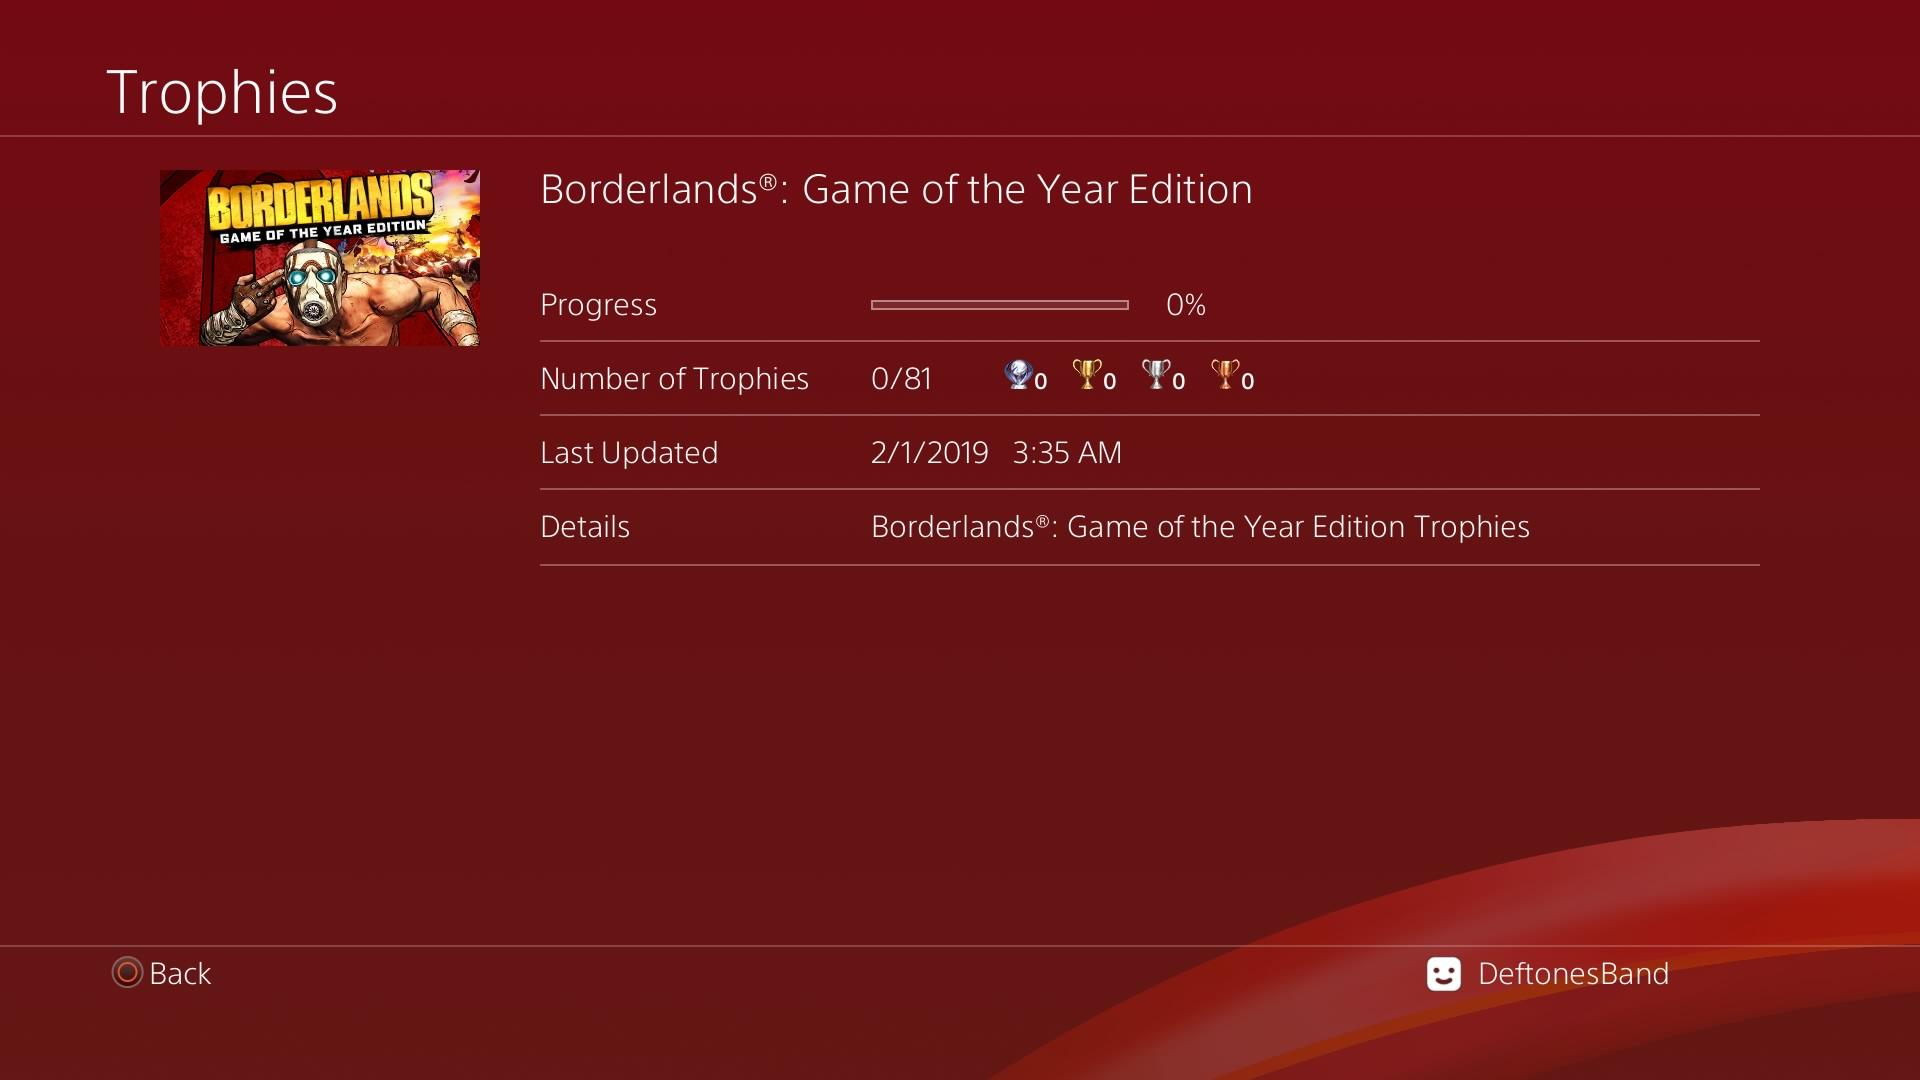 Borderlands PS4: Game of the Year Edition Trophies